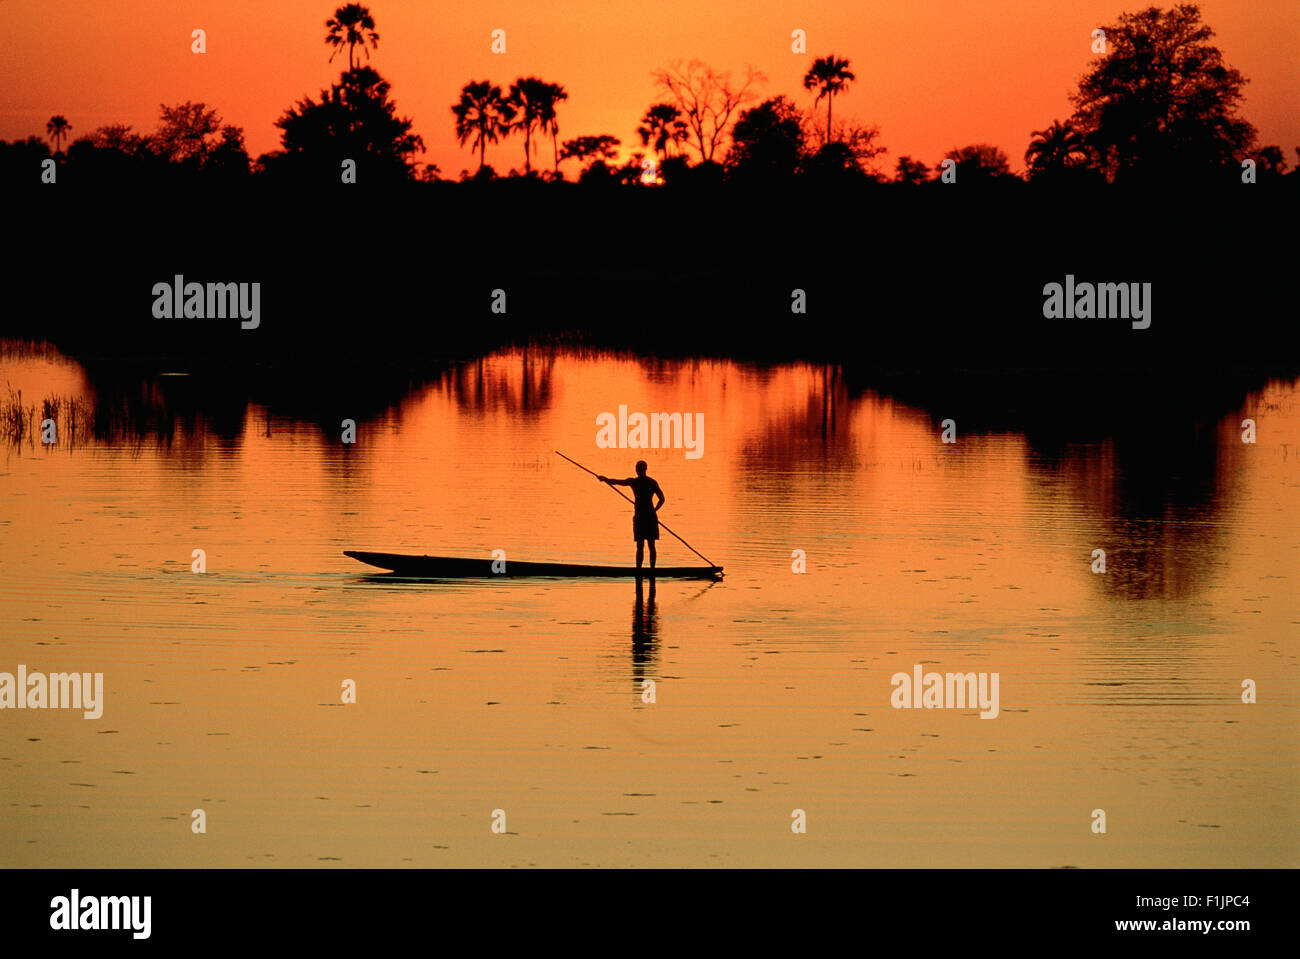 Boatman on the Chobe River at Sunset, Botswana, Africa Stock Photo